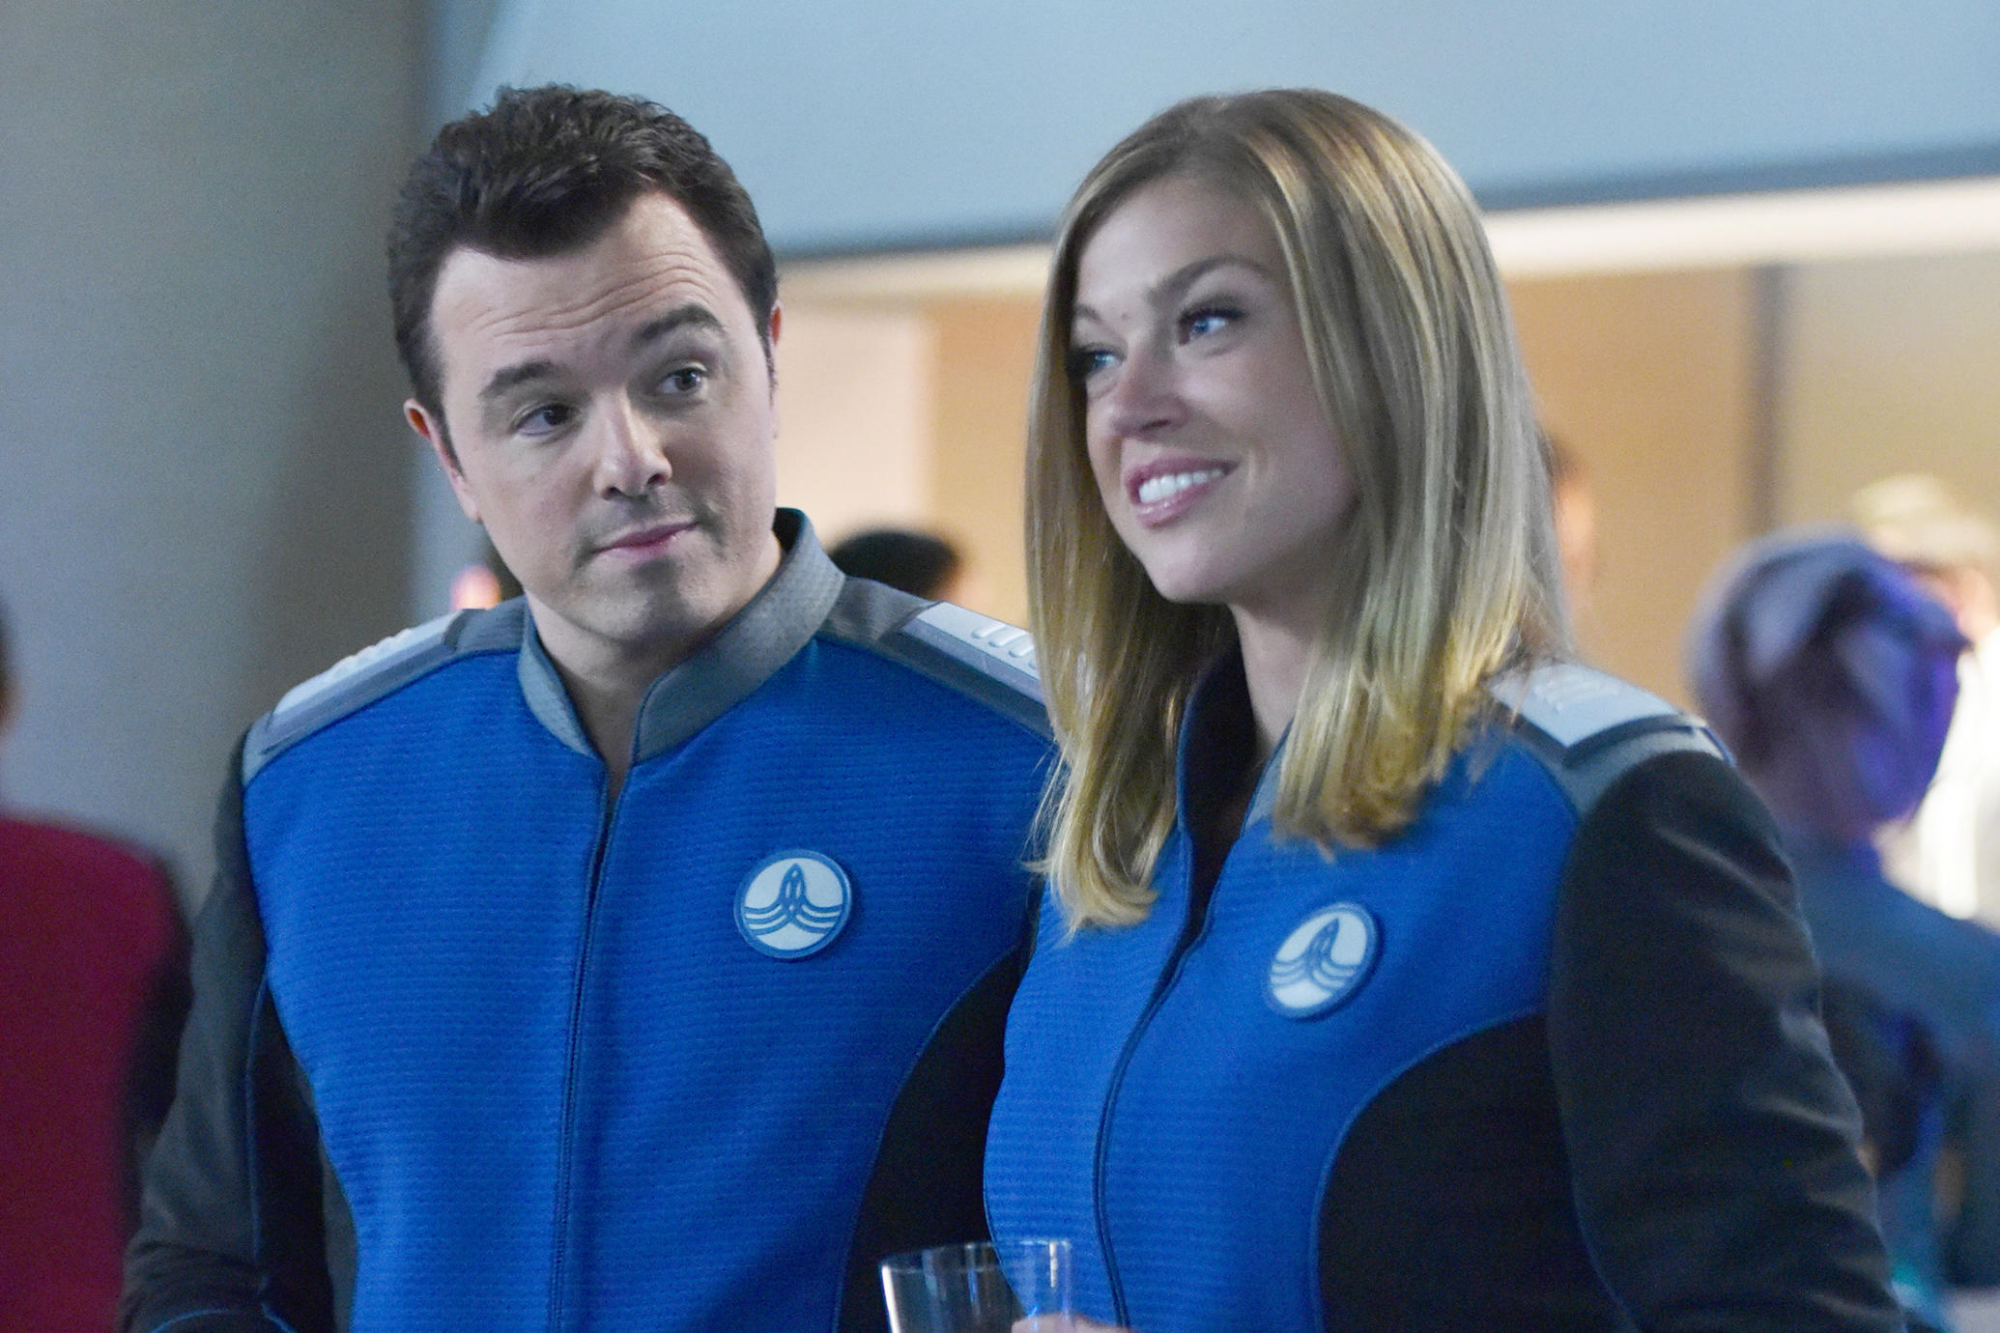 The Orville - 2020 Most Anticipated Sci-Fi Series